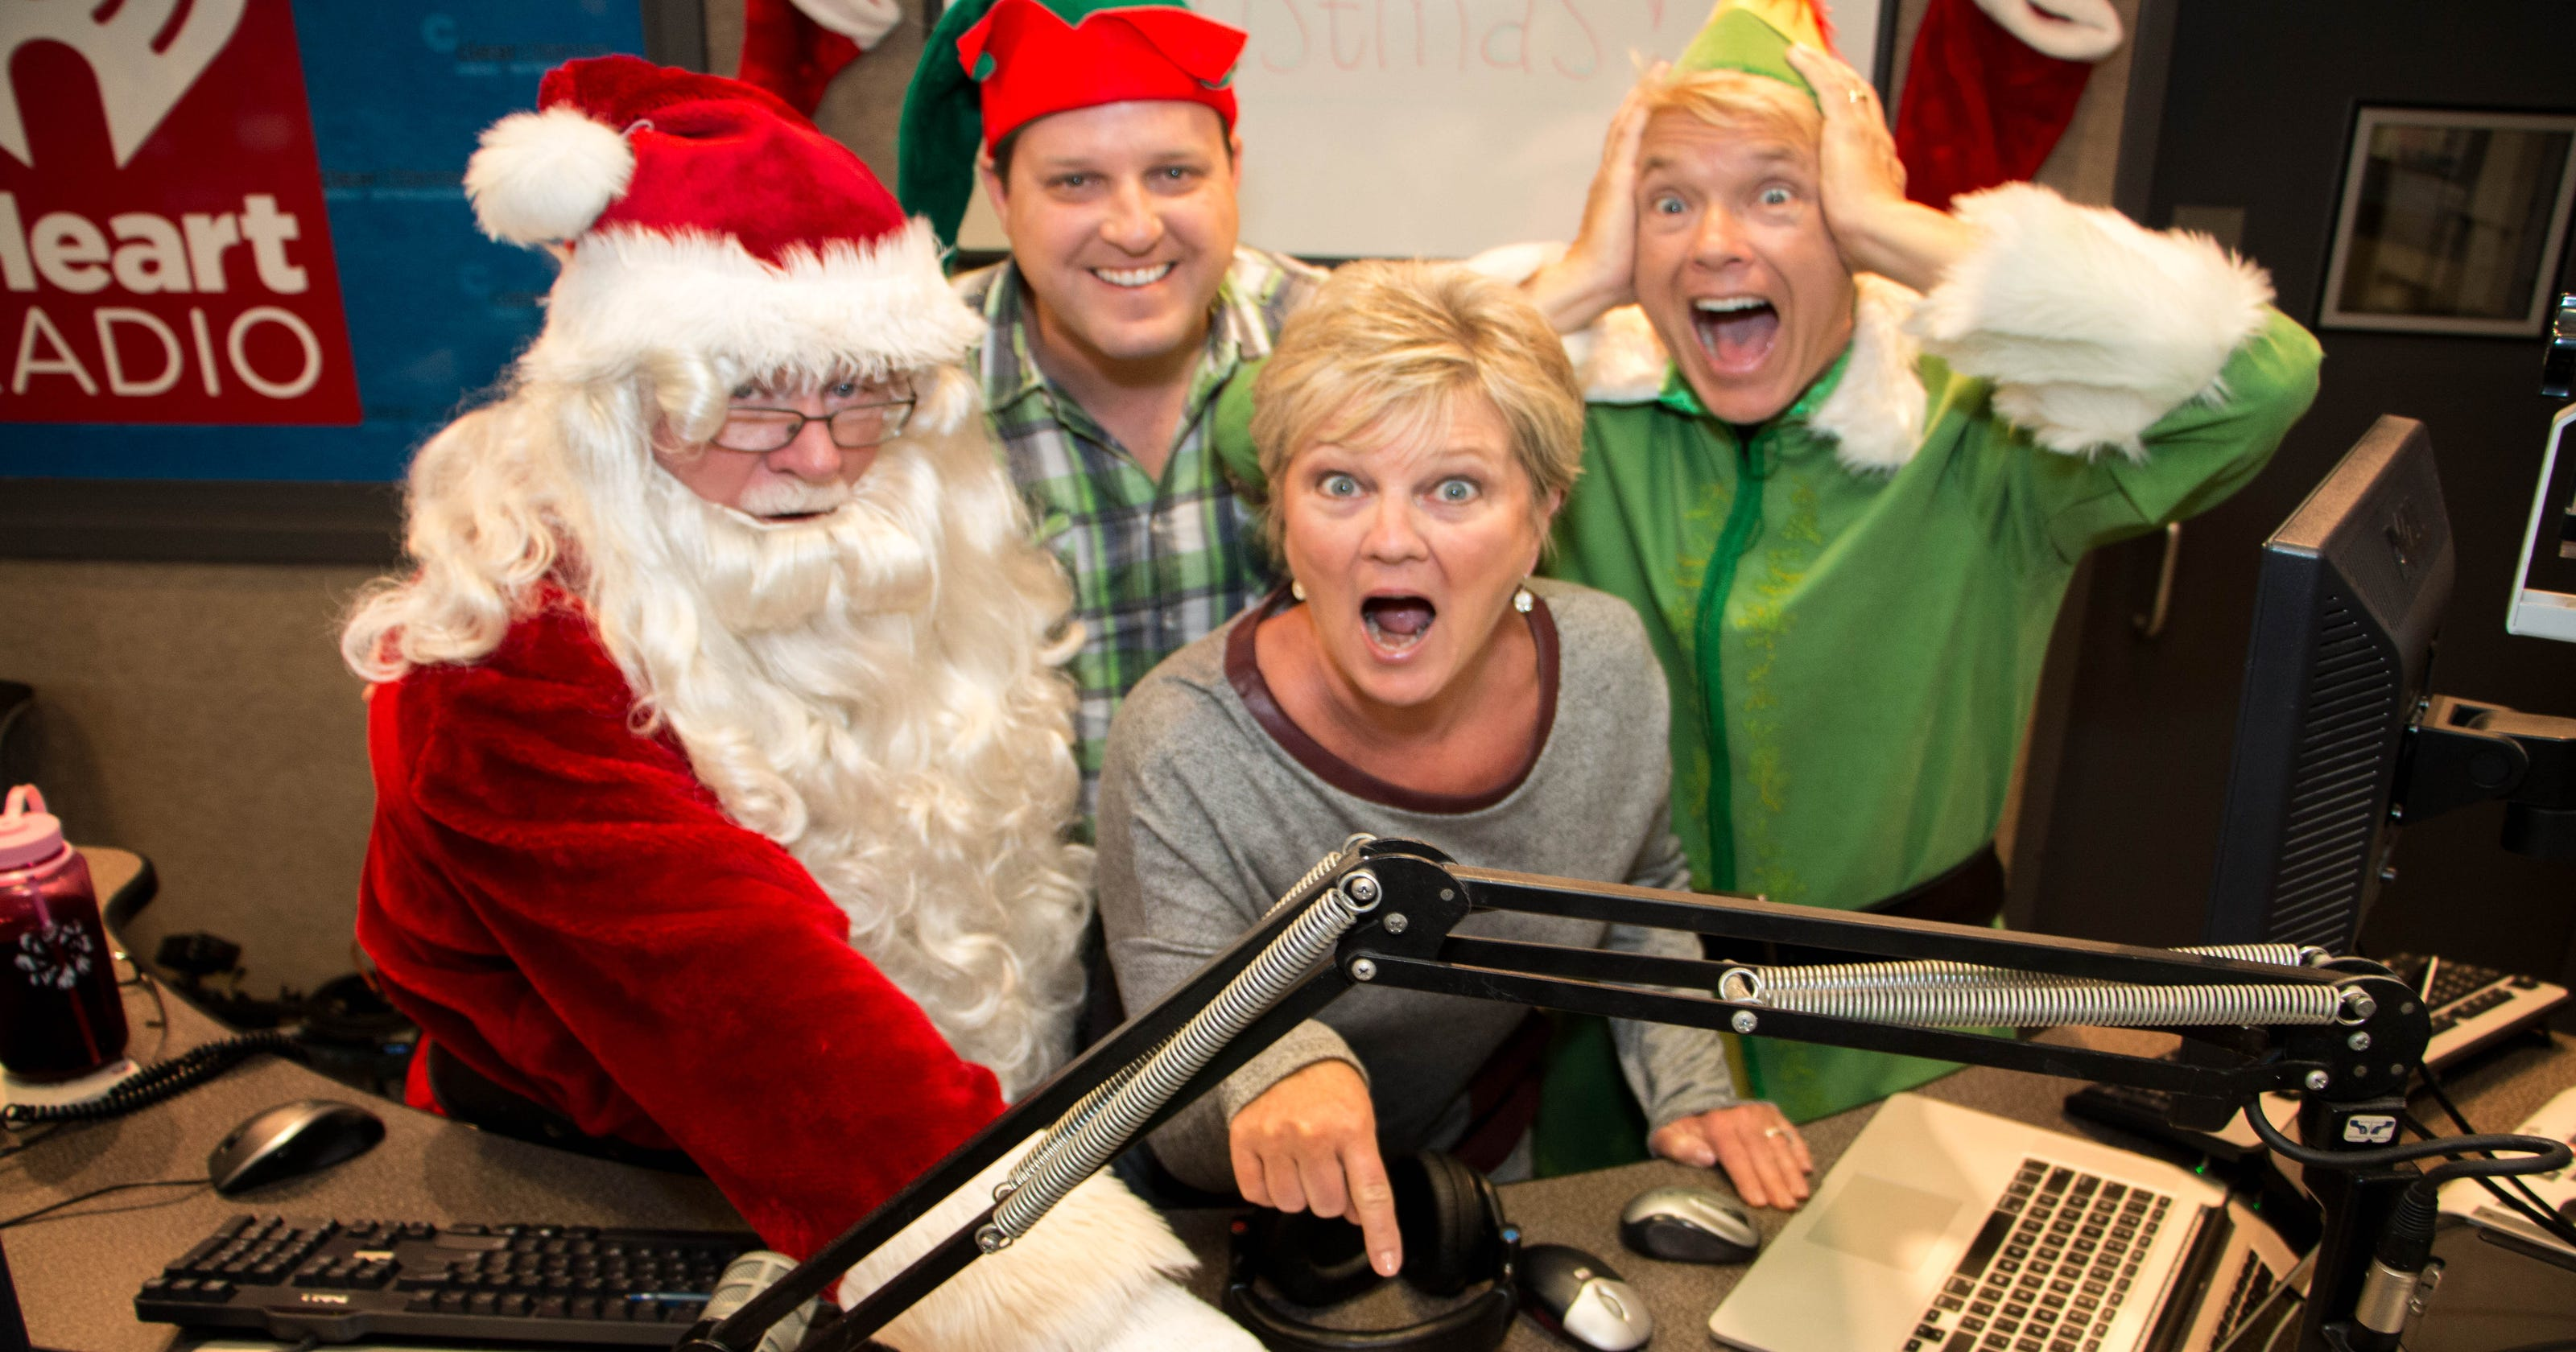 Christmas Music On Radio 2019.Christmas Music Will Play On The Radio Soon And You Can T